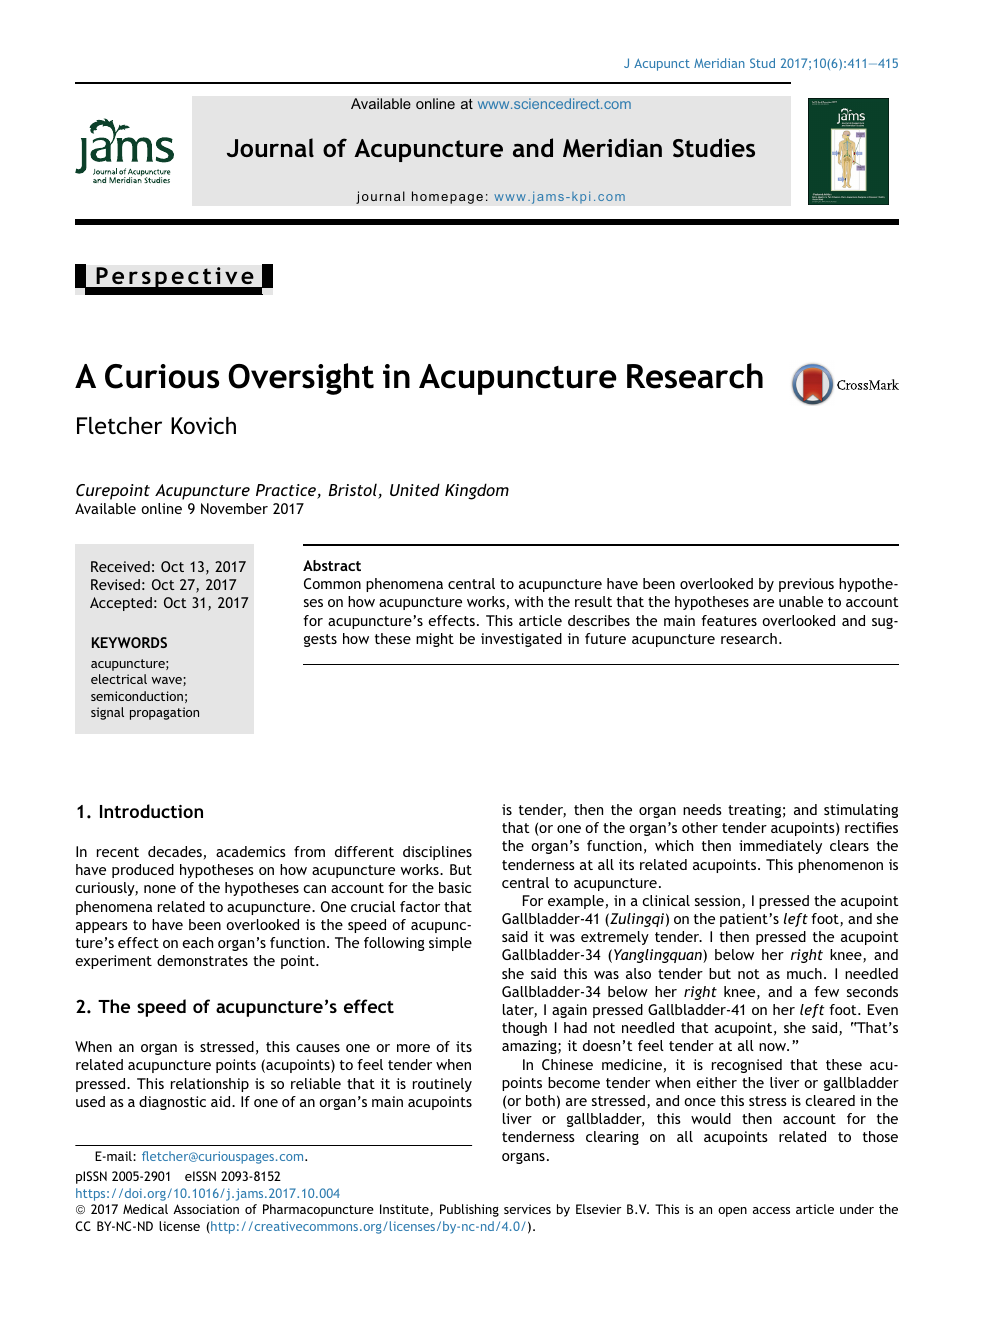 A Curious Oversight in Acupuncture Research – topic of